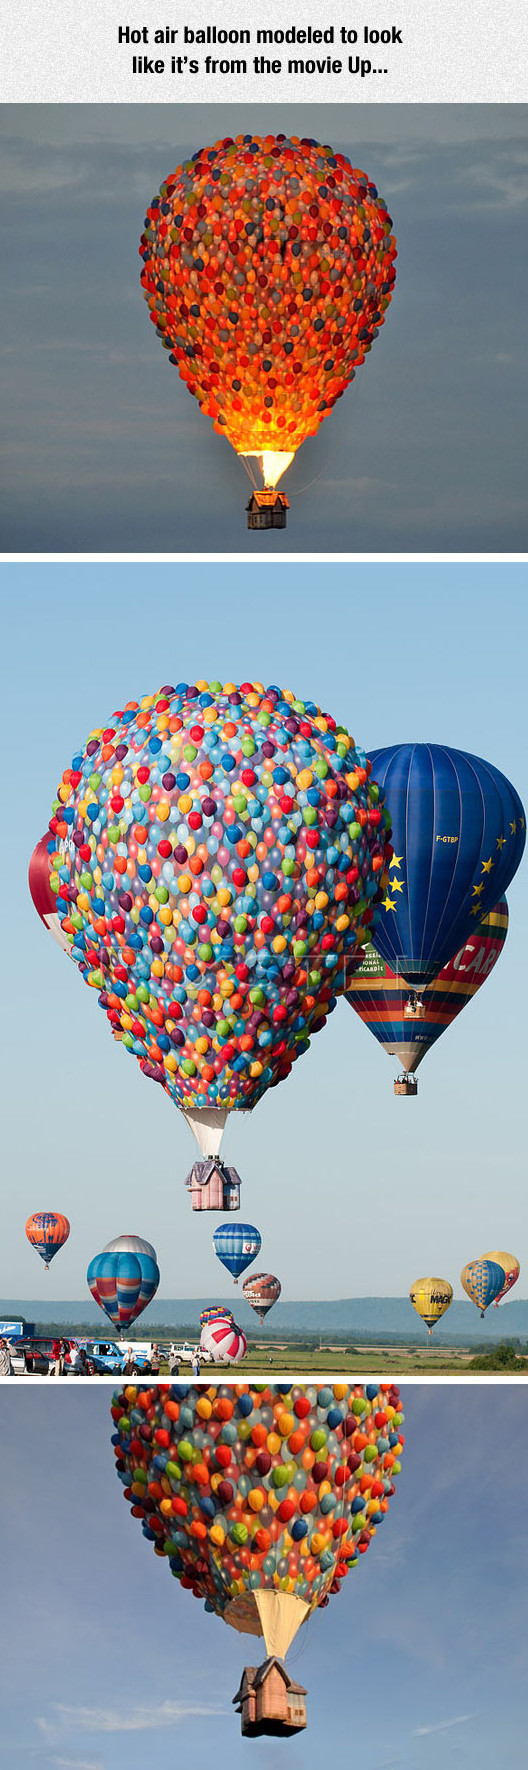 cool-air-balloon-up-movie